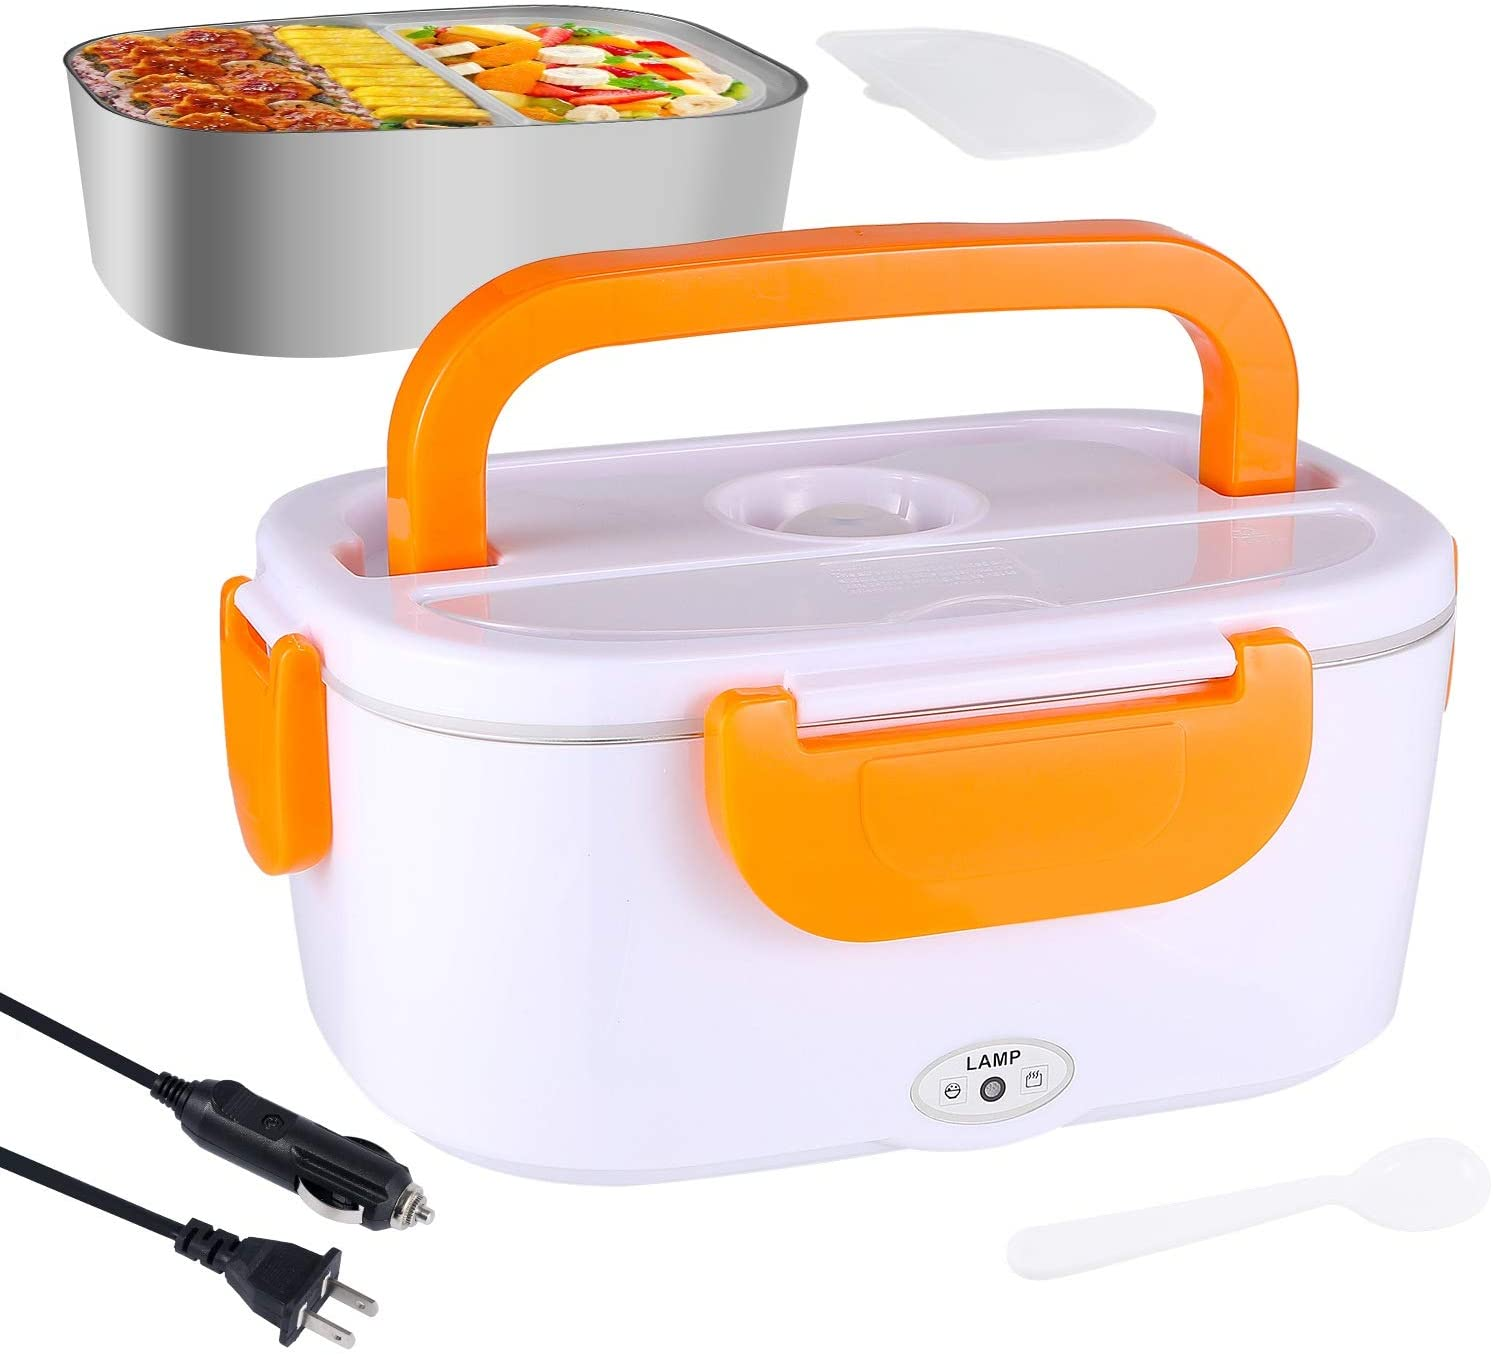 60W Electric Lunch Box Food Heater, 2 in 1 Portable Food Warmer for Car and Home 110V & 12V 1.5L Electric Heating Lunch Box with Removable Stainless Steel Food Container - 100% BPA Free